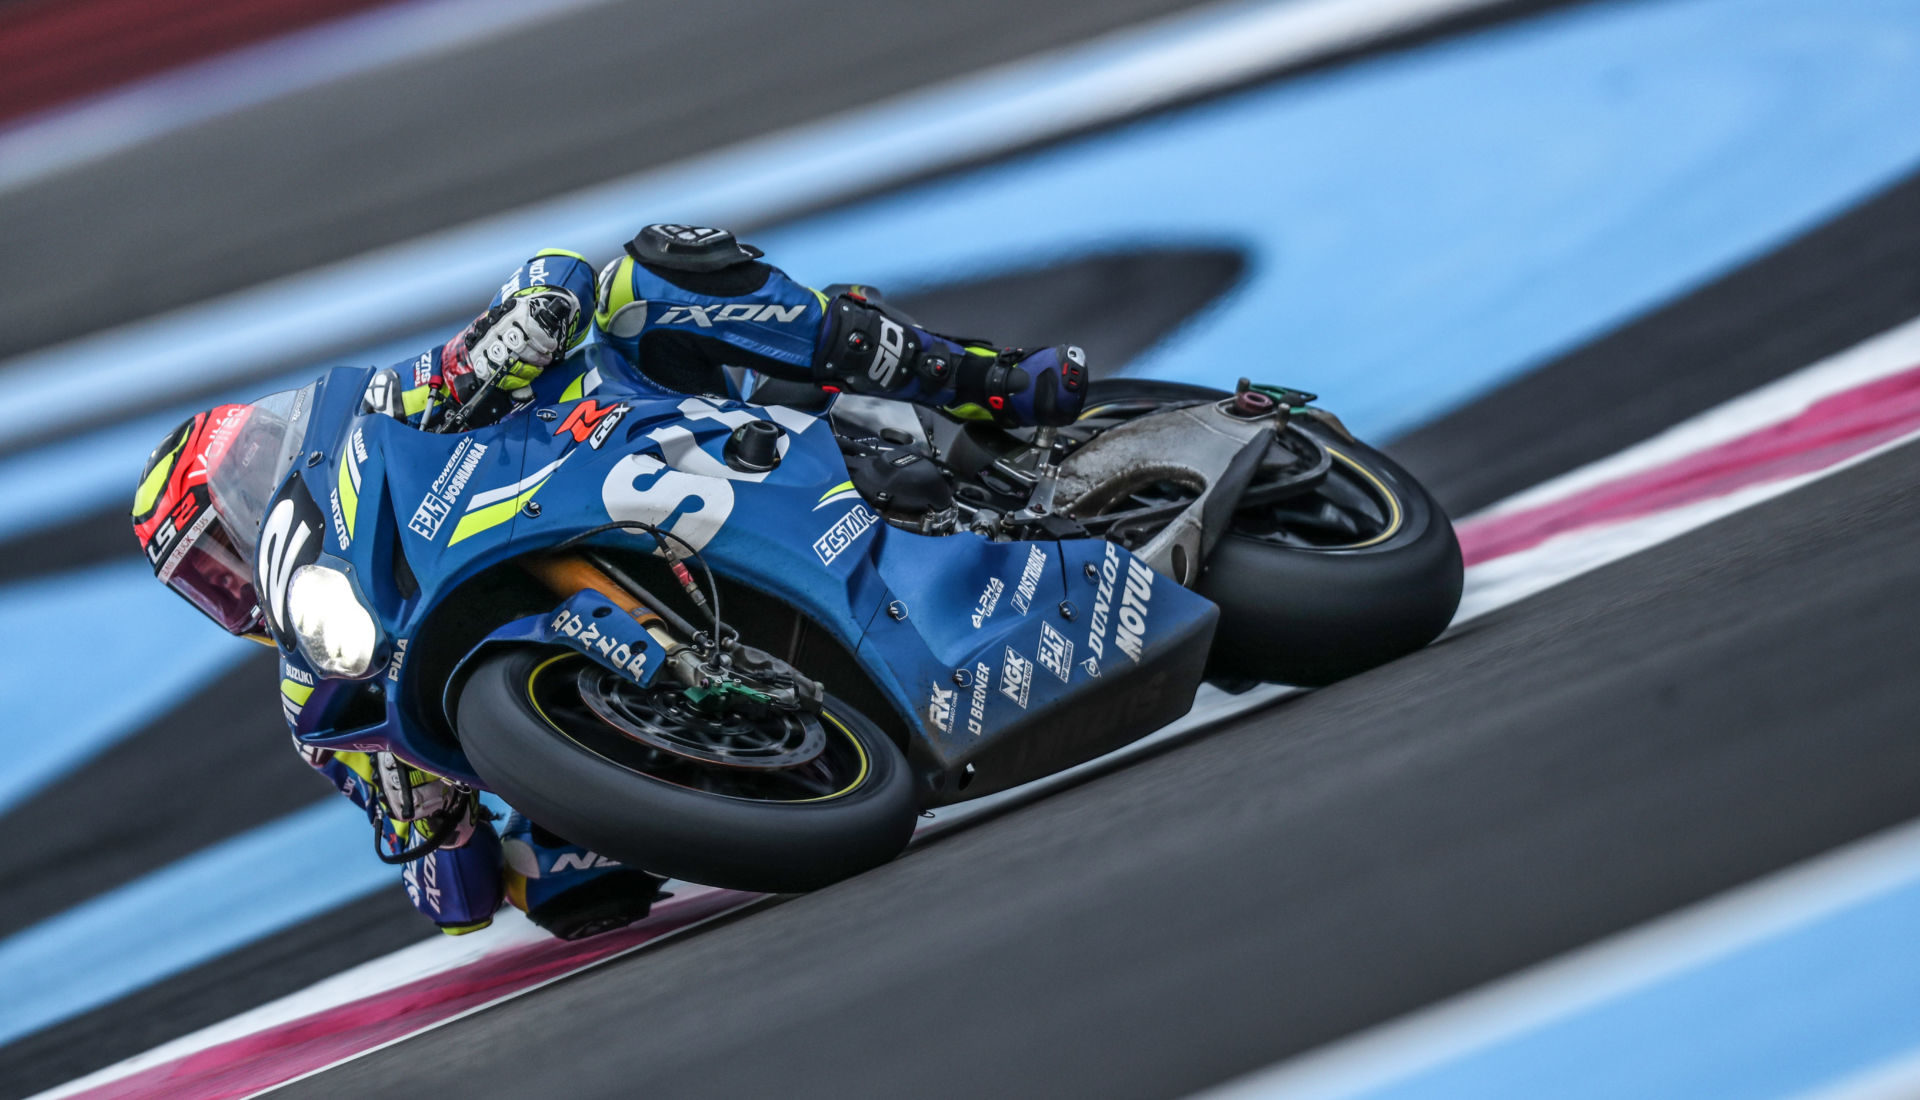 Suzuki Endurance Racing Team (2) won the weather-shortened Bol d'Or 24-hour.